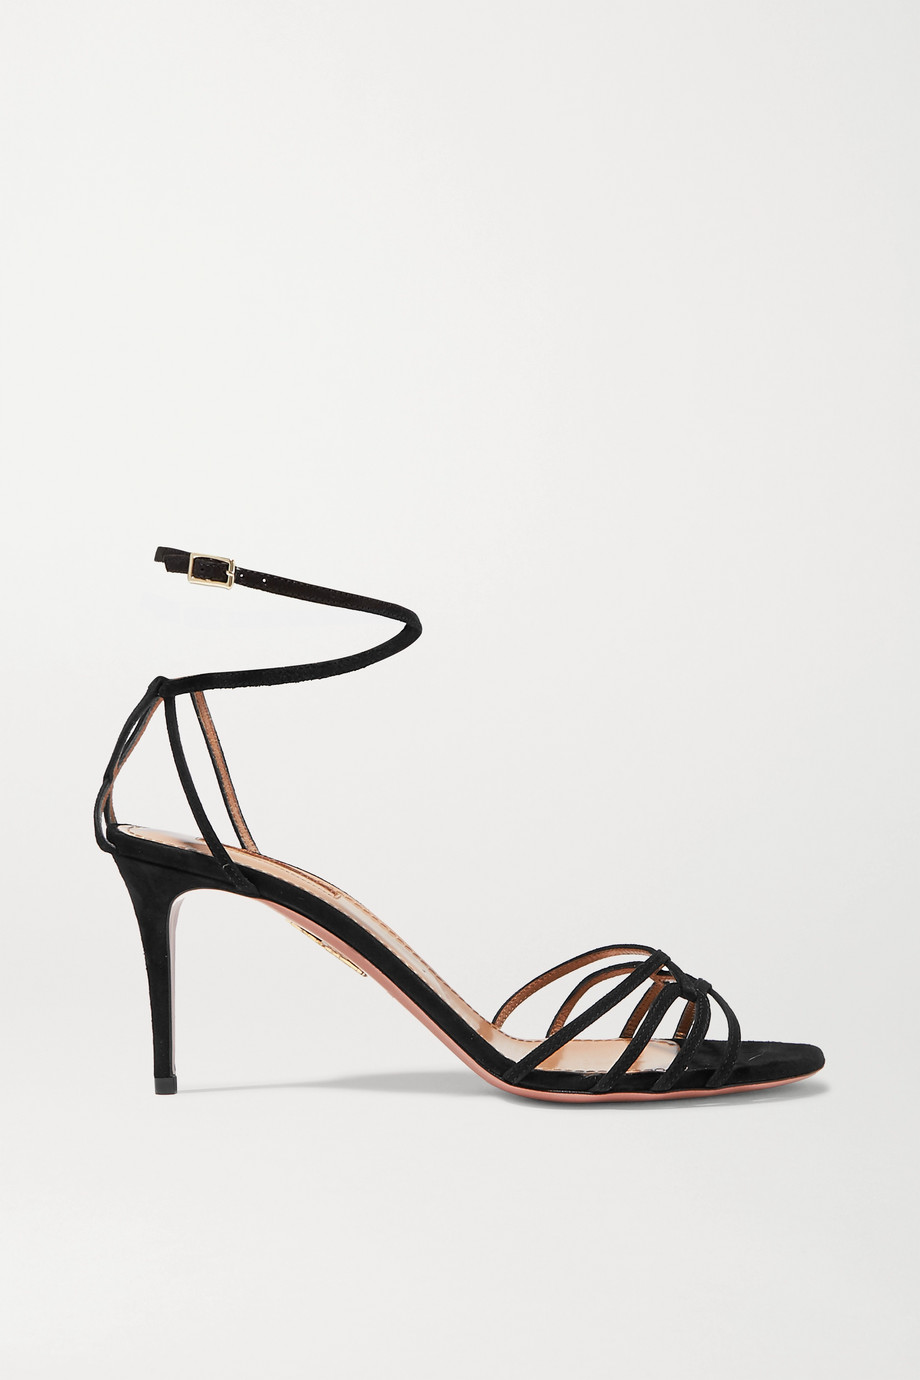 Aquazzura Very First Kiss 75 suede sandals